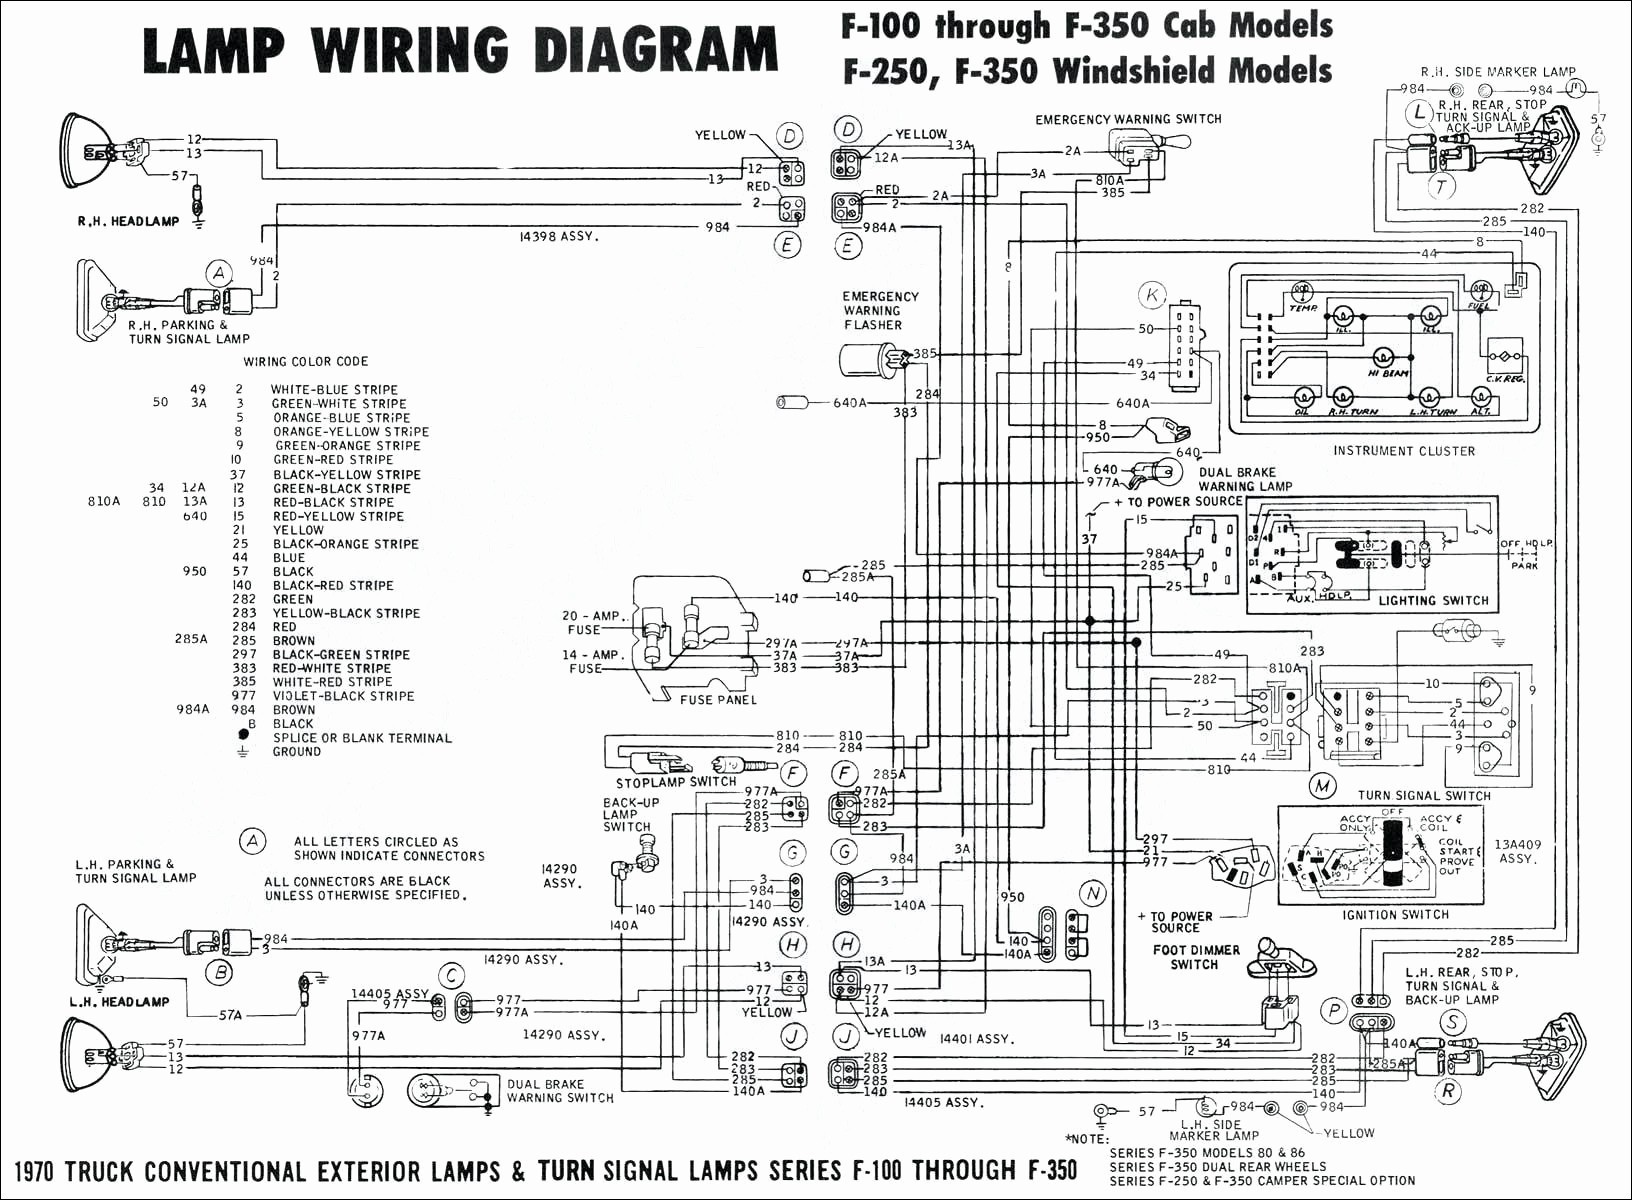 Immersion Heater Wiring Diagram Wiring Diagram Immersion Heater thermostat Save Electric Water Of Immersion Heater Wiring Diagram